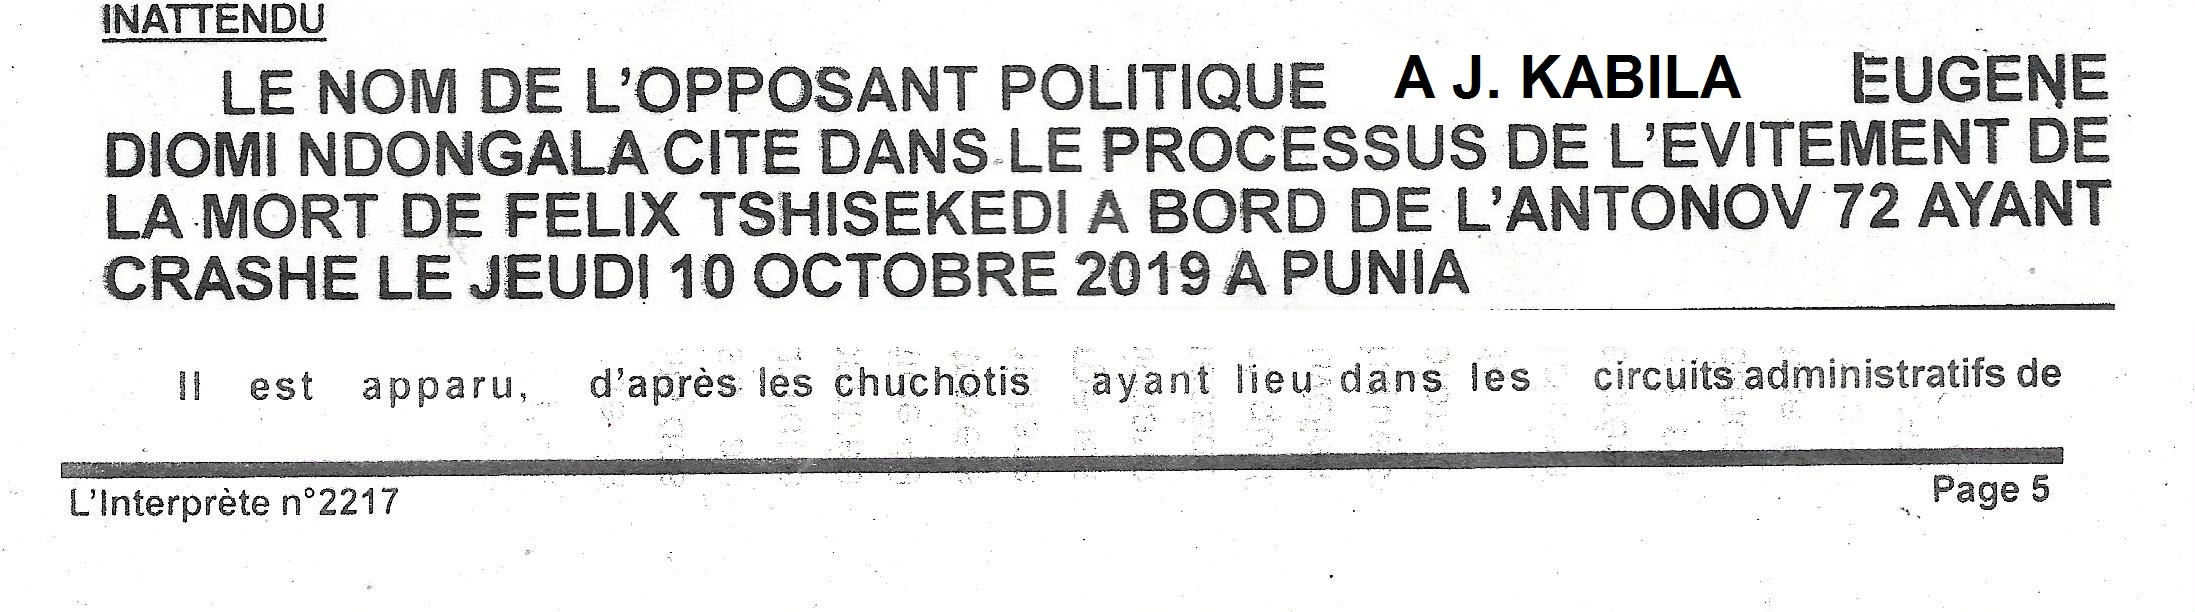 INTERPRETE 17.10.19.2 001